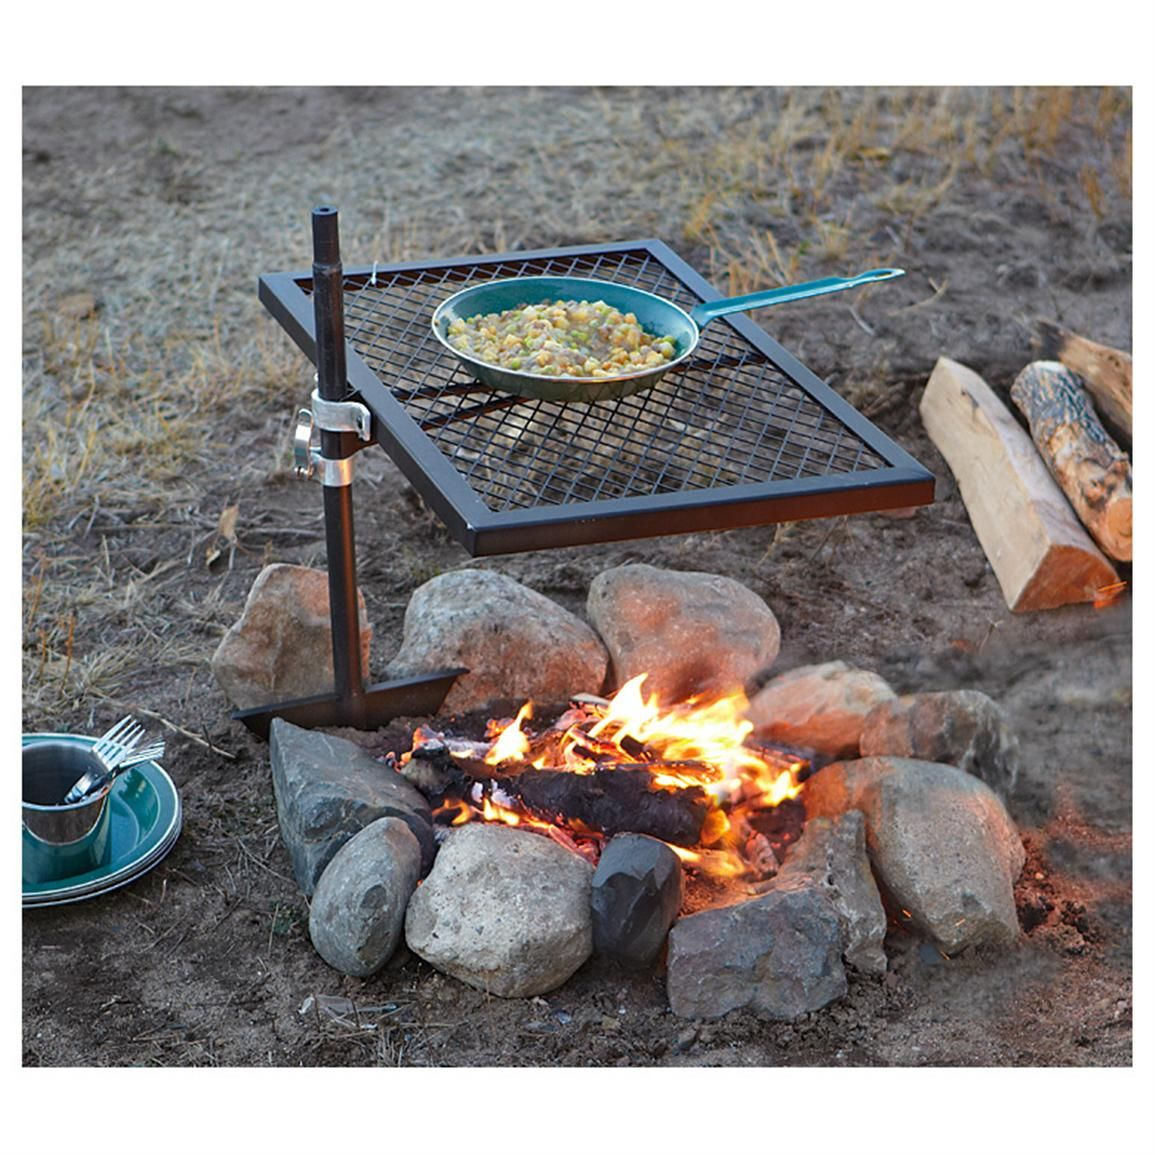 Guide Gear® Swivel Fire Pit Grill $25